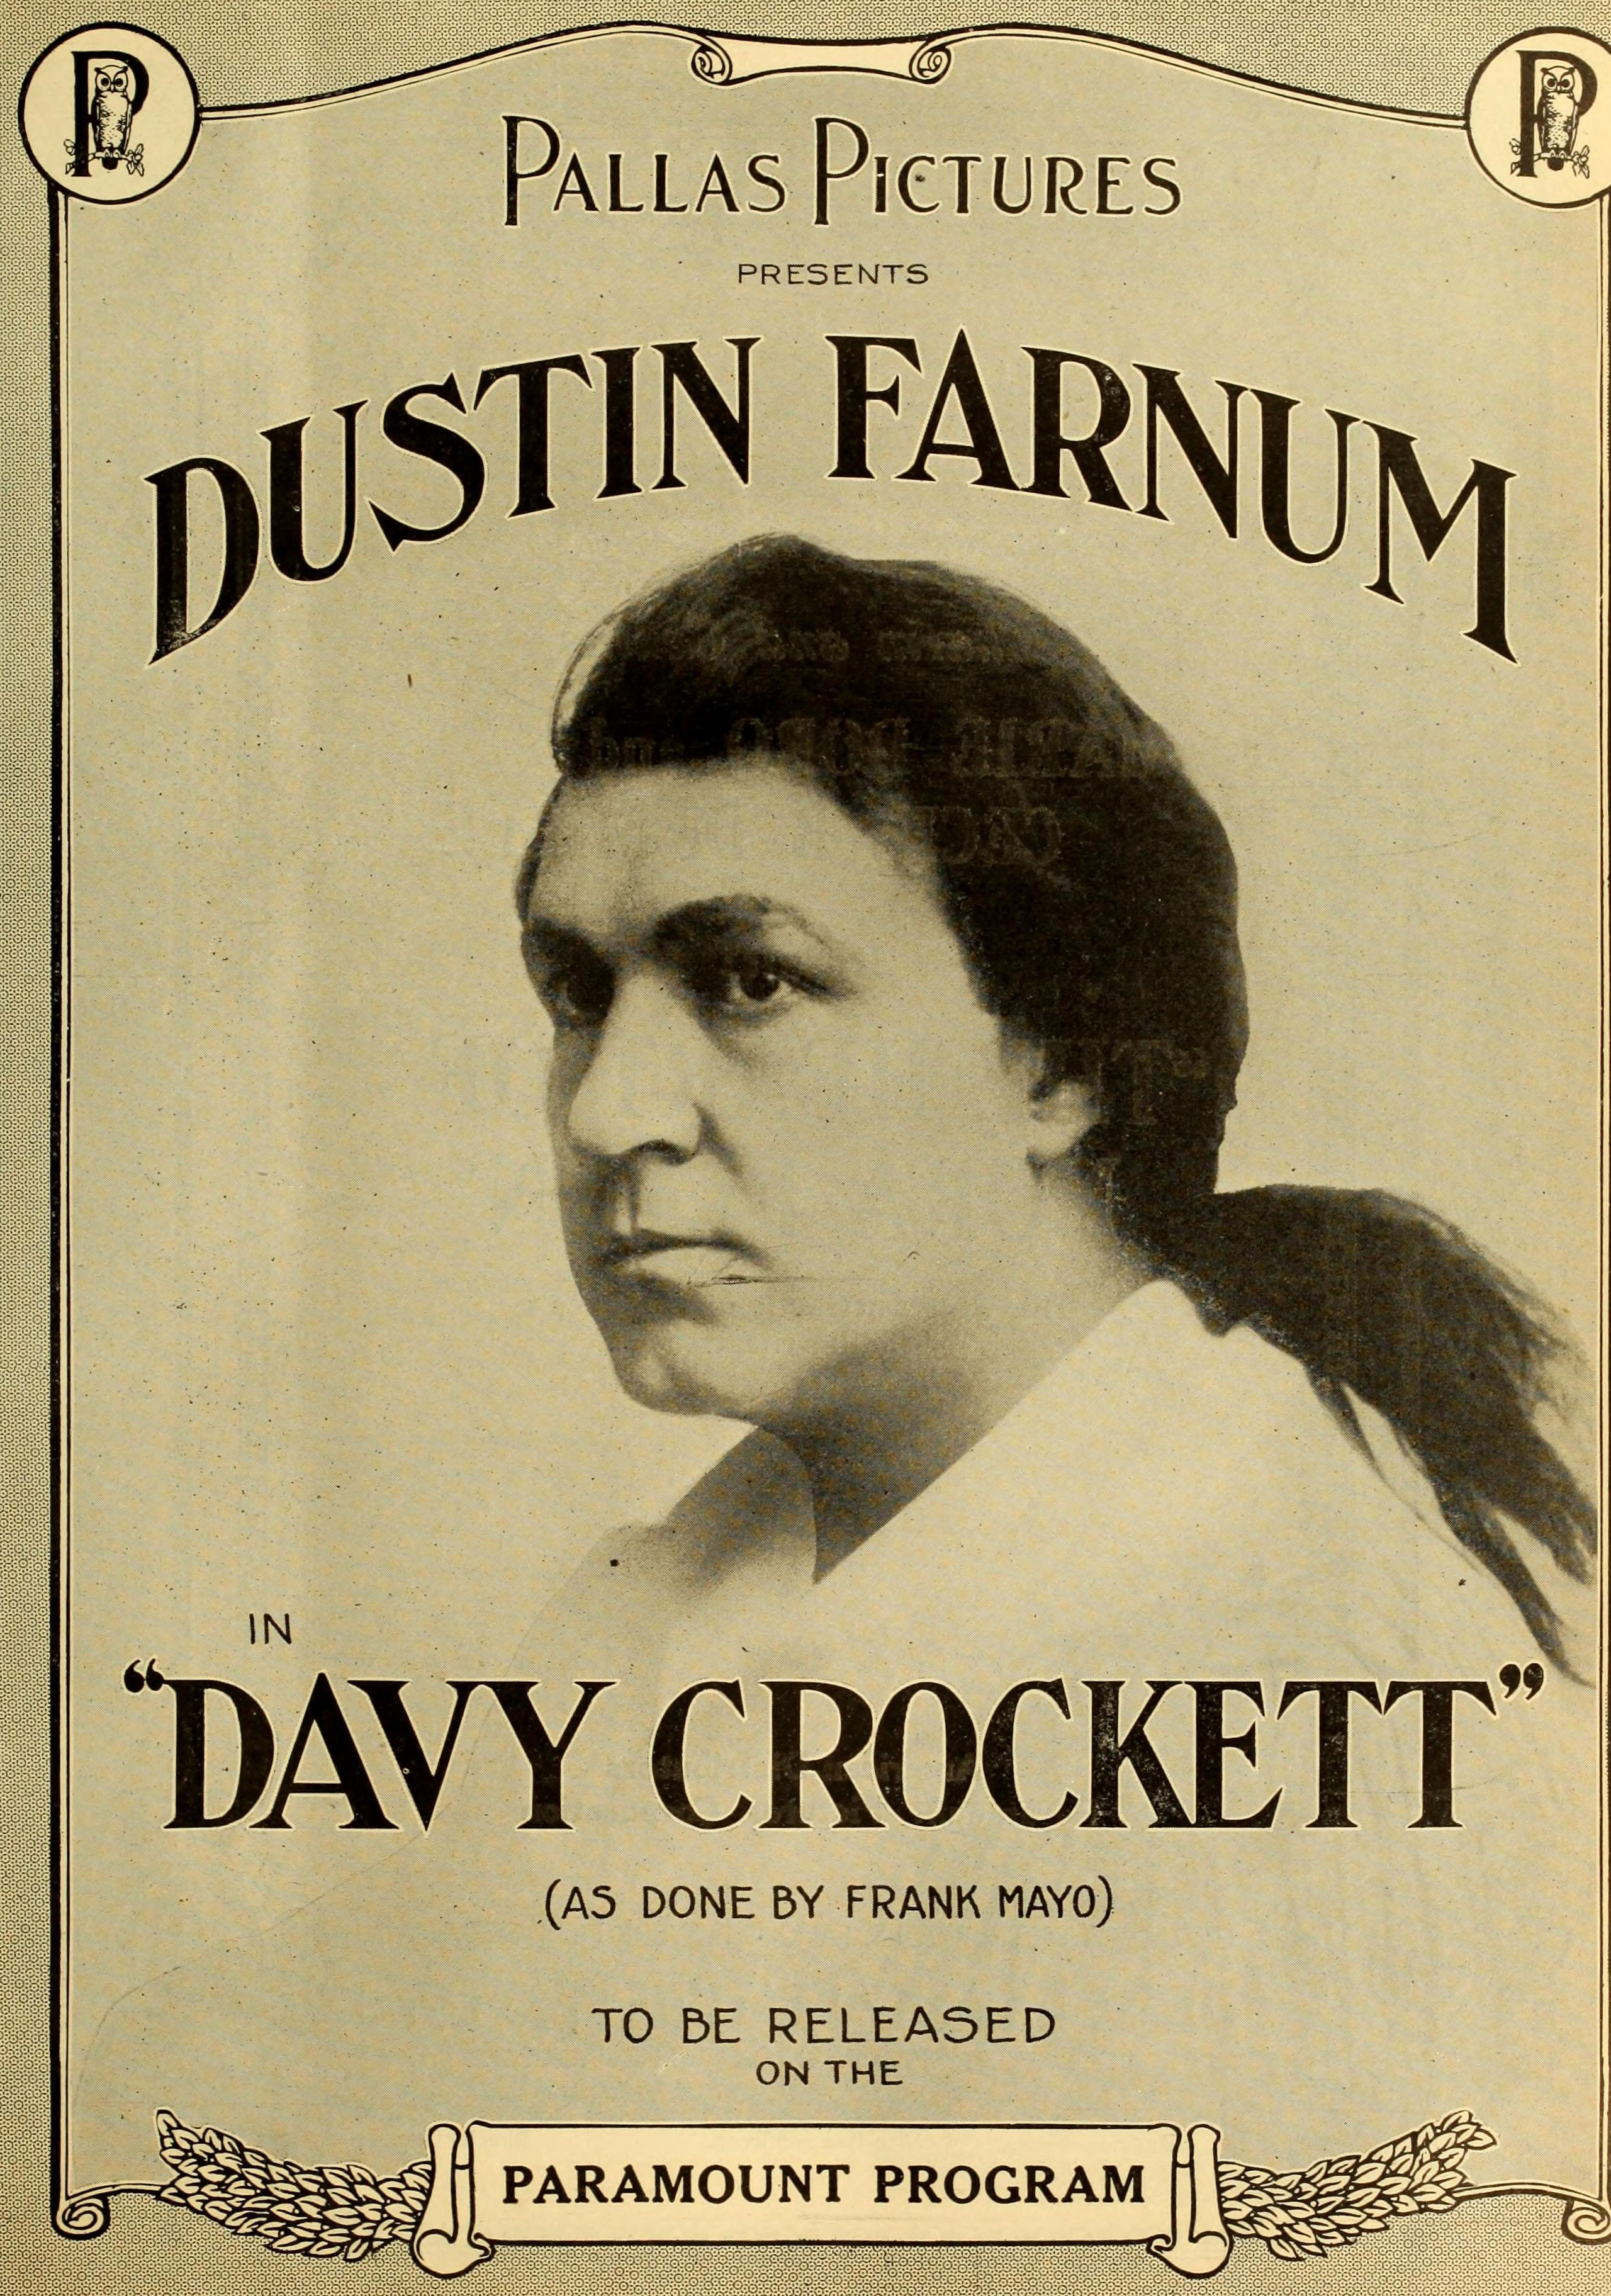 davy crockett David davy crockett (august 17, 1786 – march 6, 1836) was a 19th-century american folk hero, frontiersman, soldier, and politicianhe is commonly referred to in popular culture by the epithet king of the wild frontier.